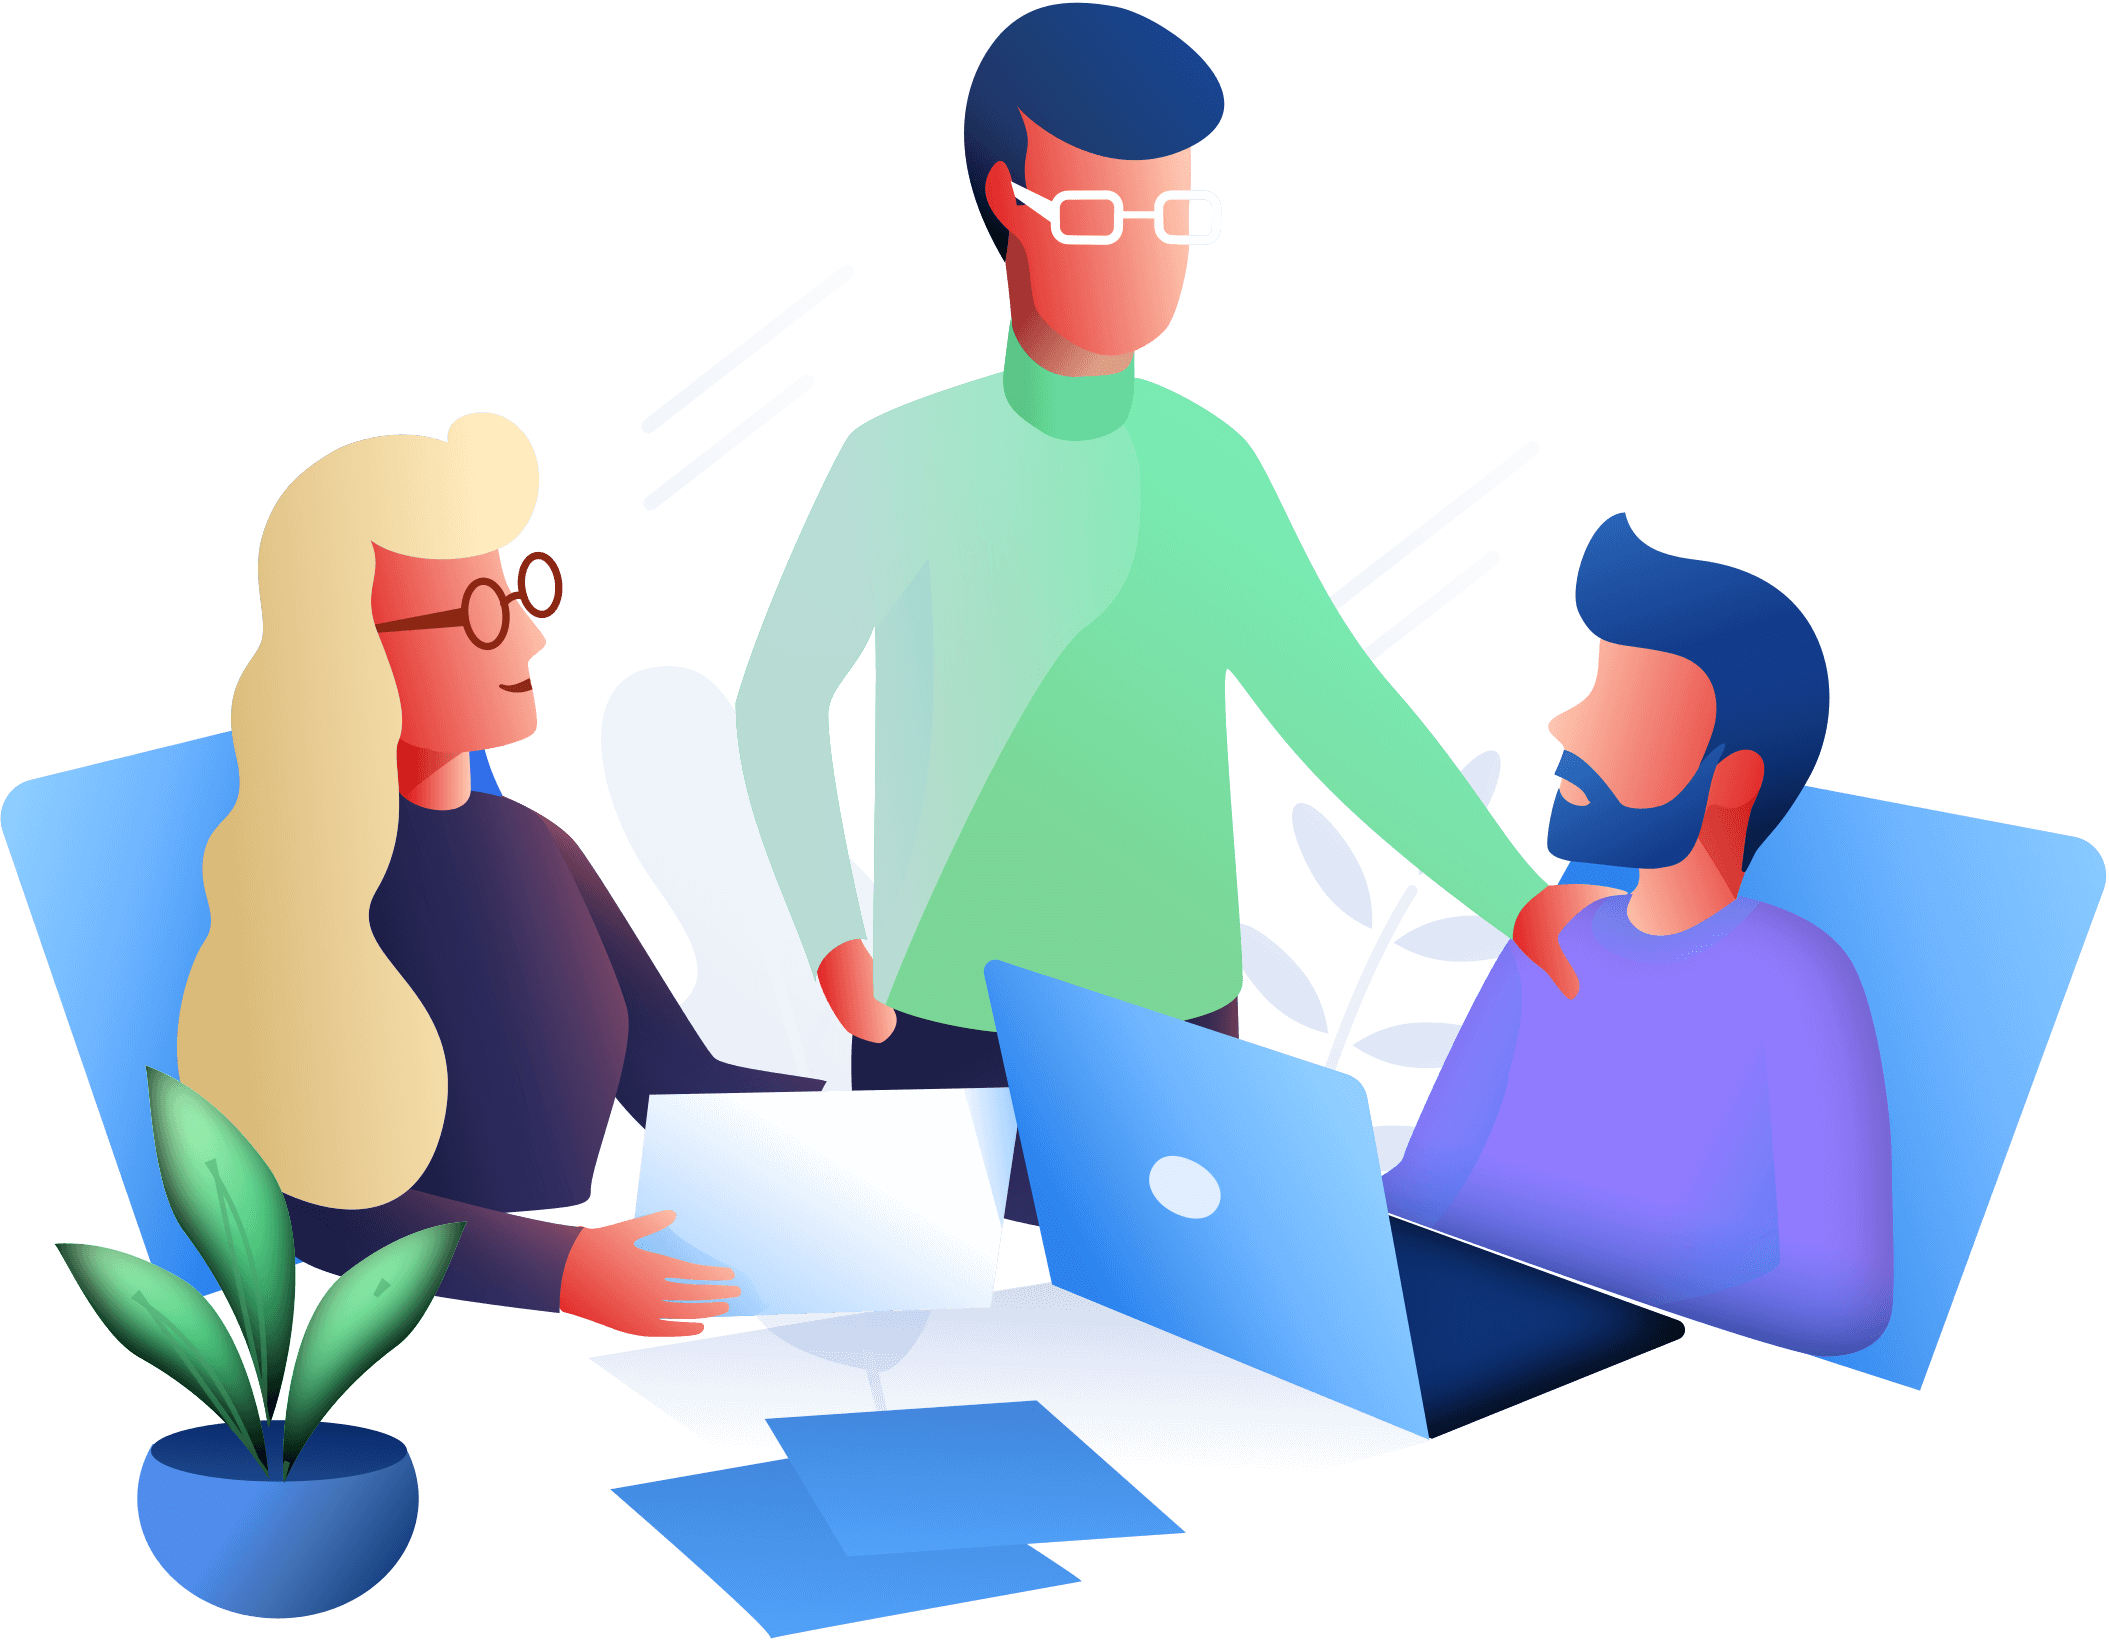 Illustration of 3 colleagues working on a project